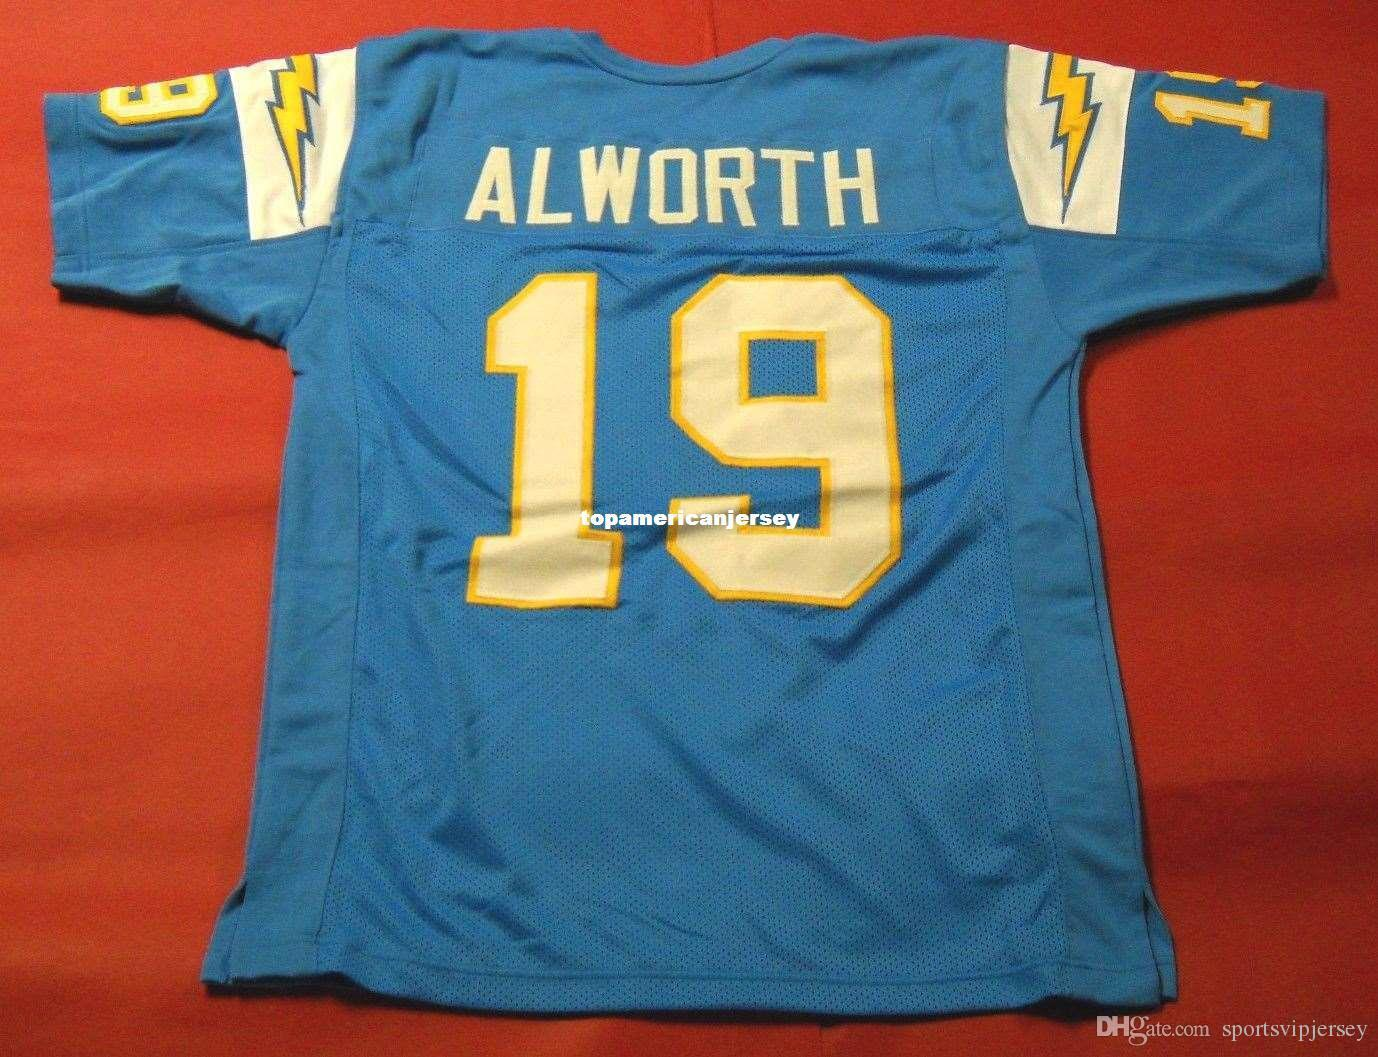 Günstige Retro # 19 Lance Alworth CUSTOM Top S-5XL, 6XL MITCHELL NESS Jersey Bule Herren Stitching Top S-5XL, 6XL Fußballjerseys Lauf